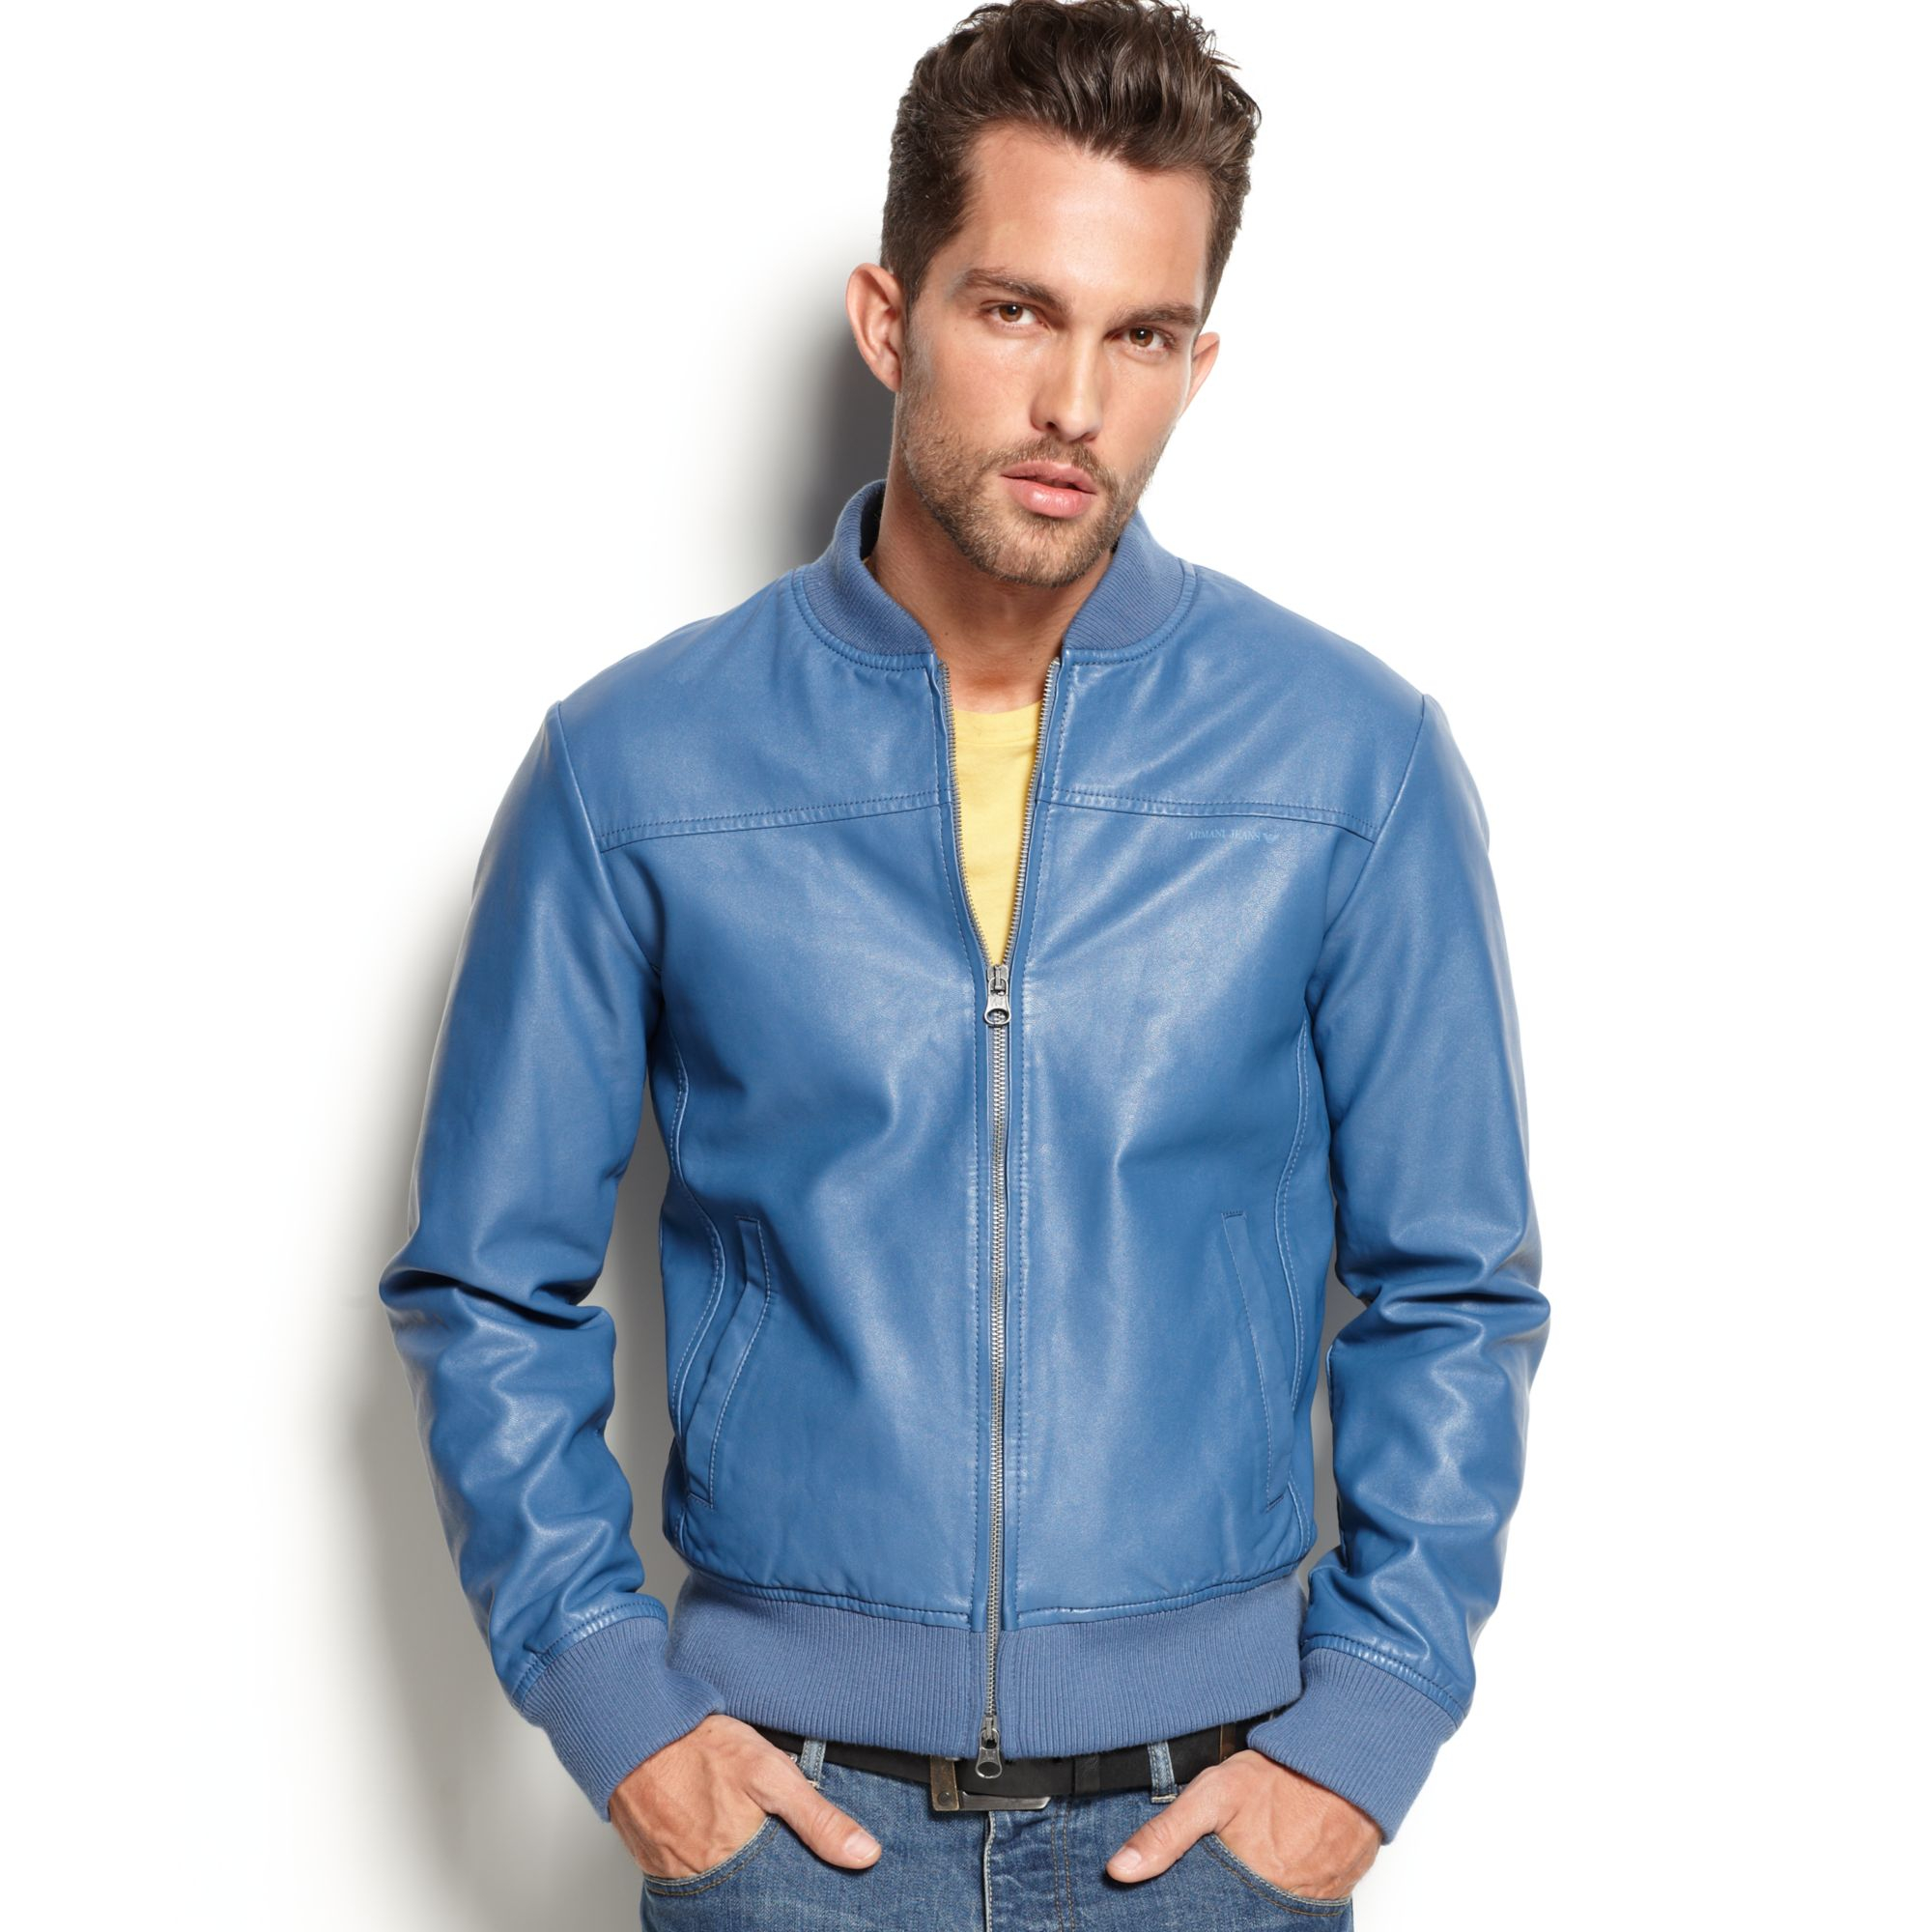 armani jeans eco fauxleather jacket in blue for men lyst. Black Bedroom Furniture Sets. Home Design Ideas